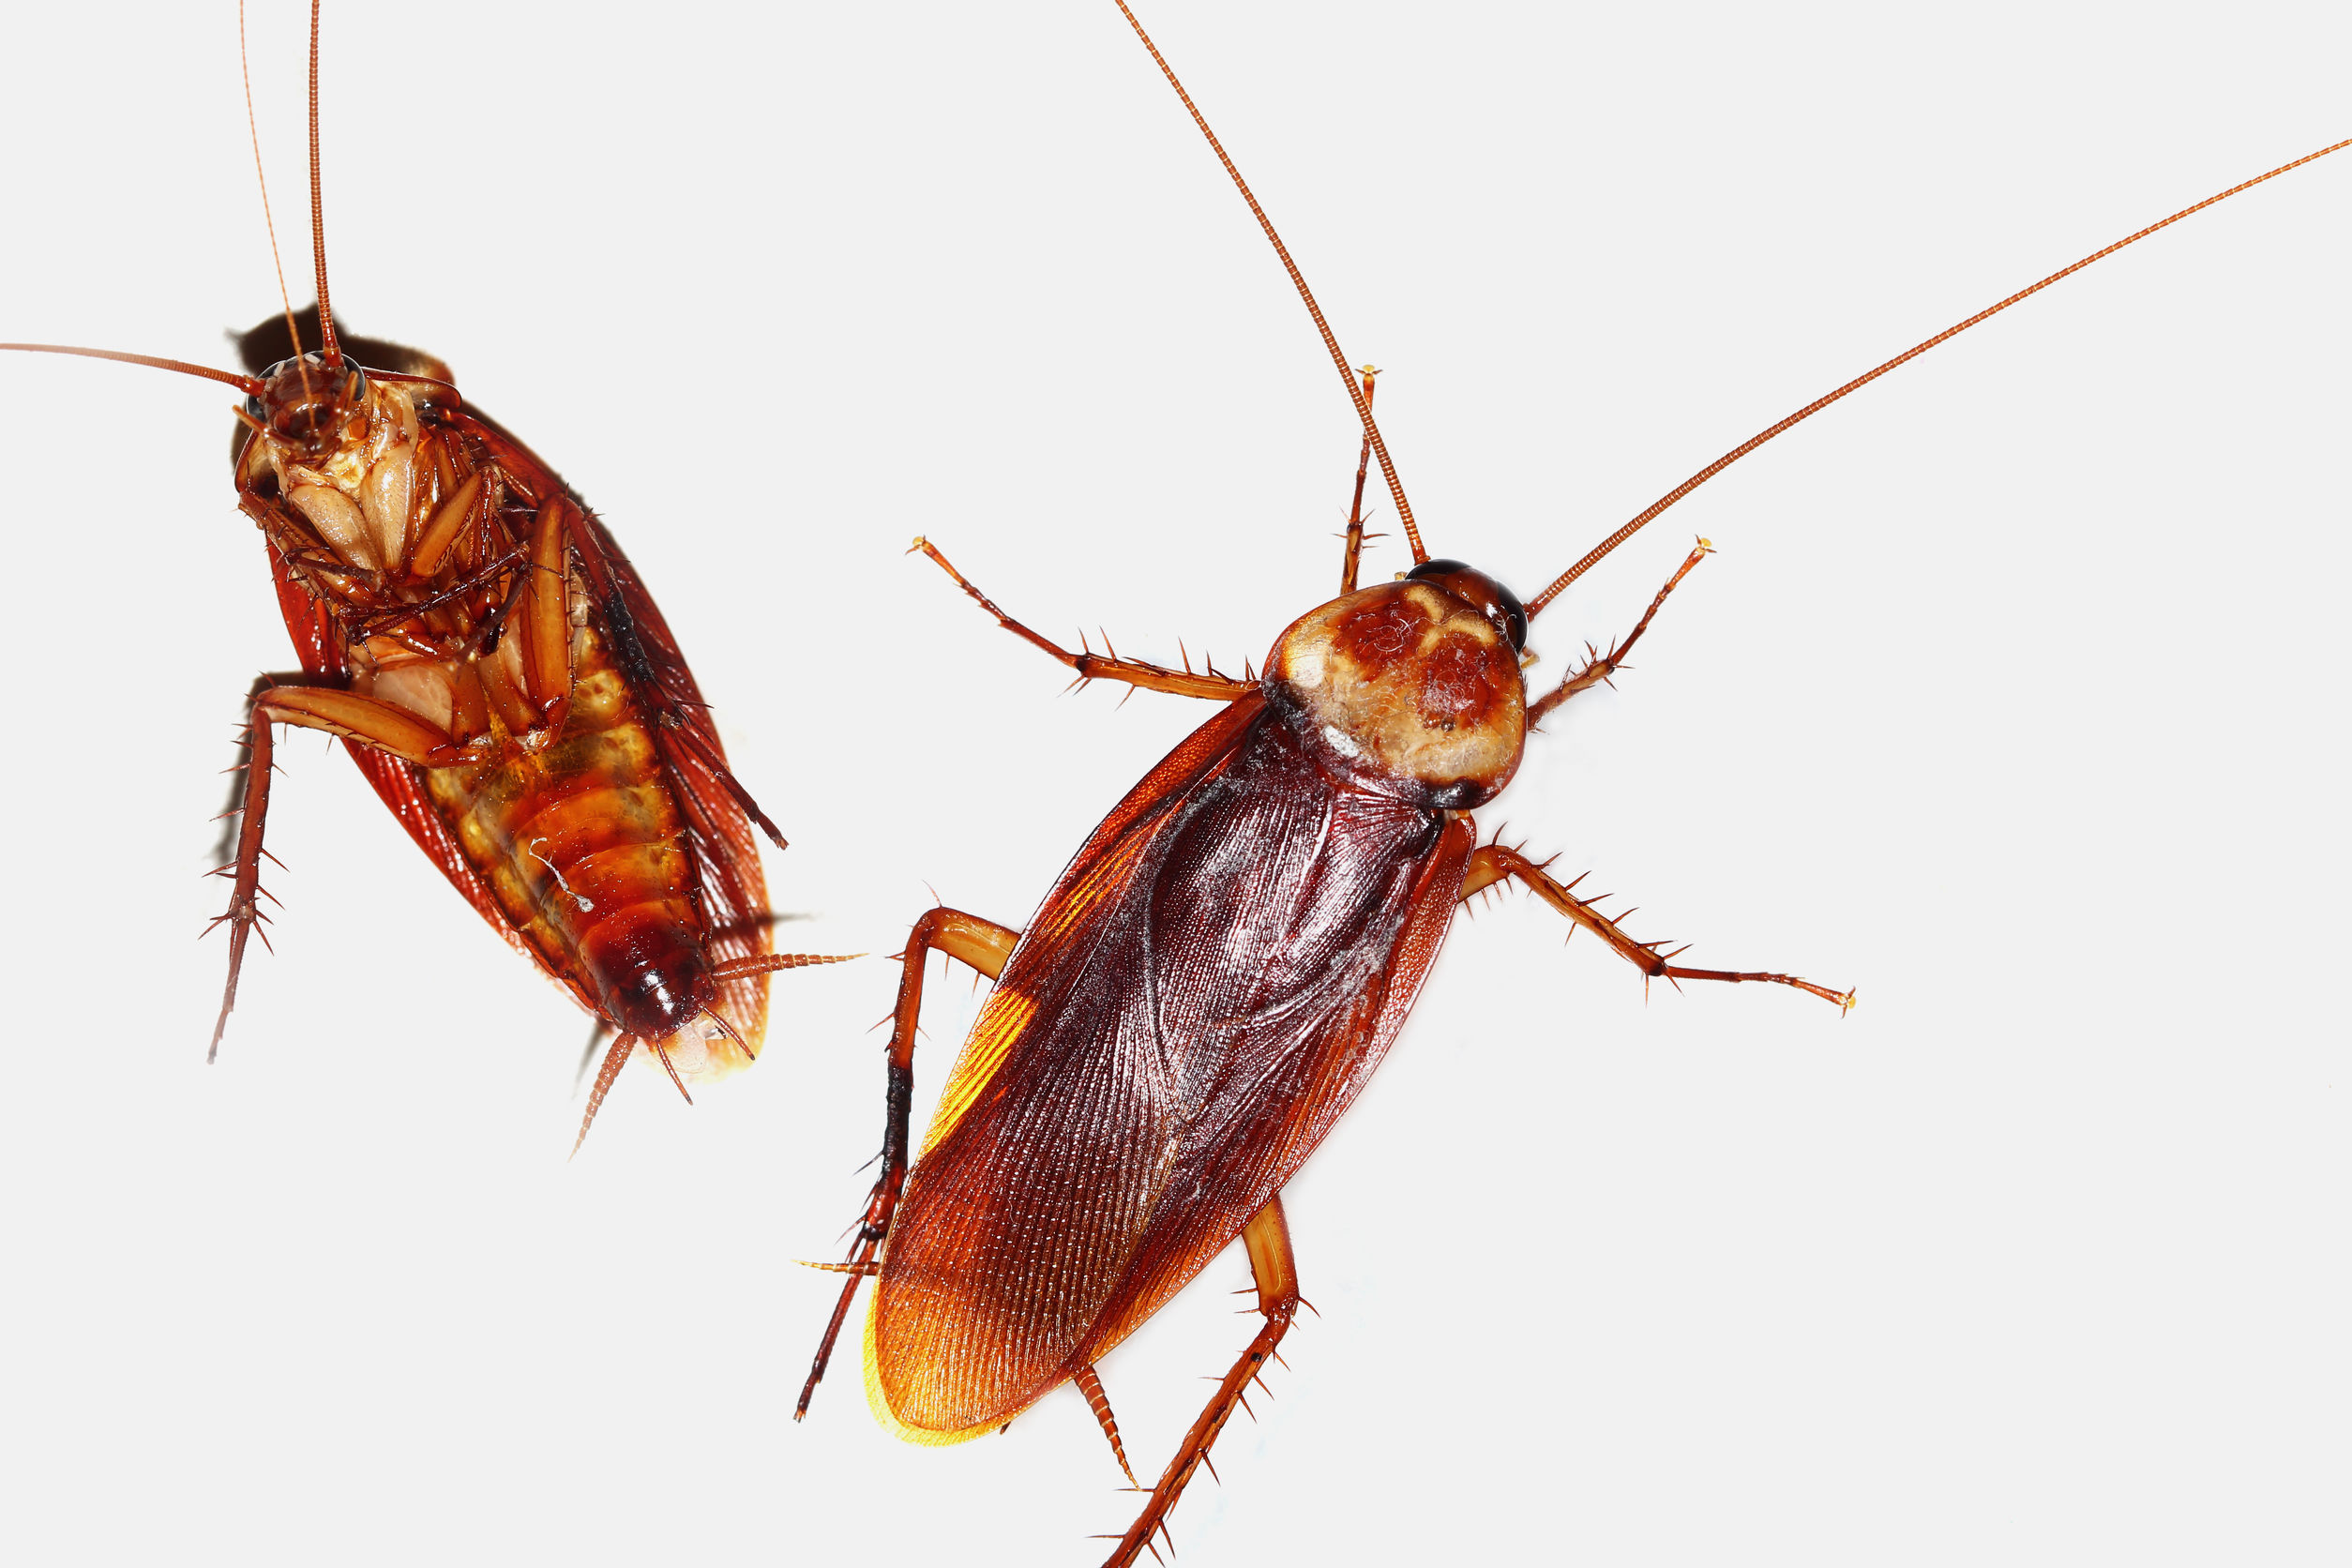 5 Simple Ways to Help Get Rid of Roaches - Premier Pest